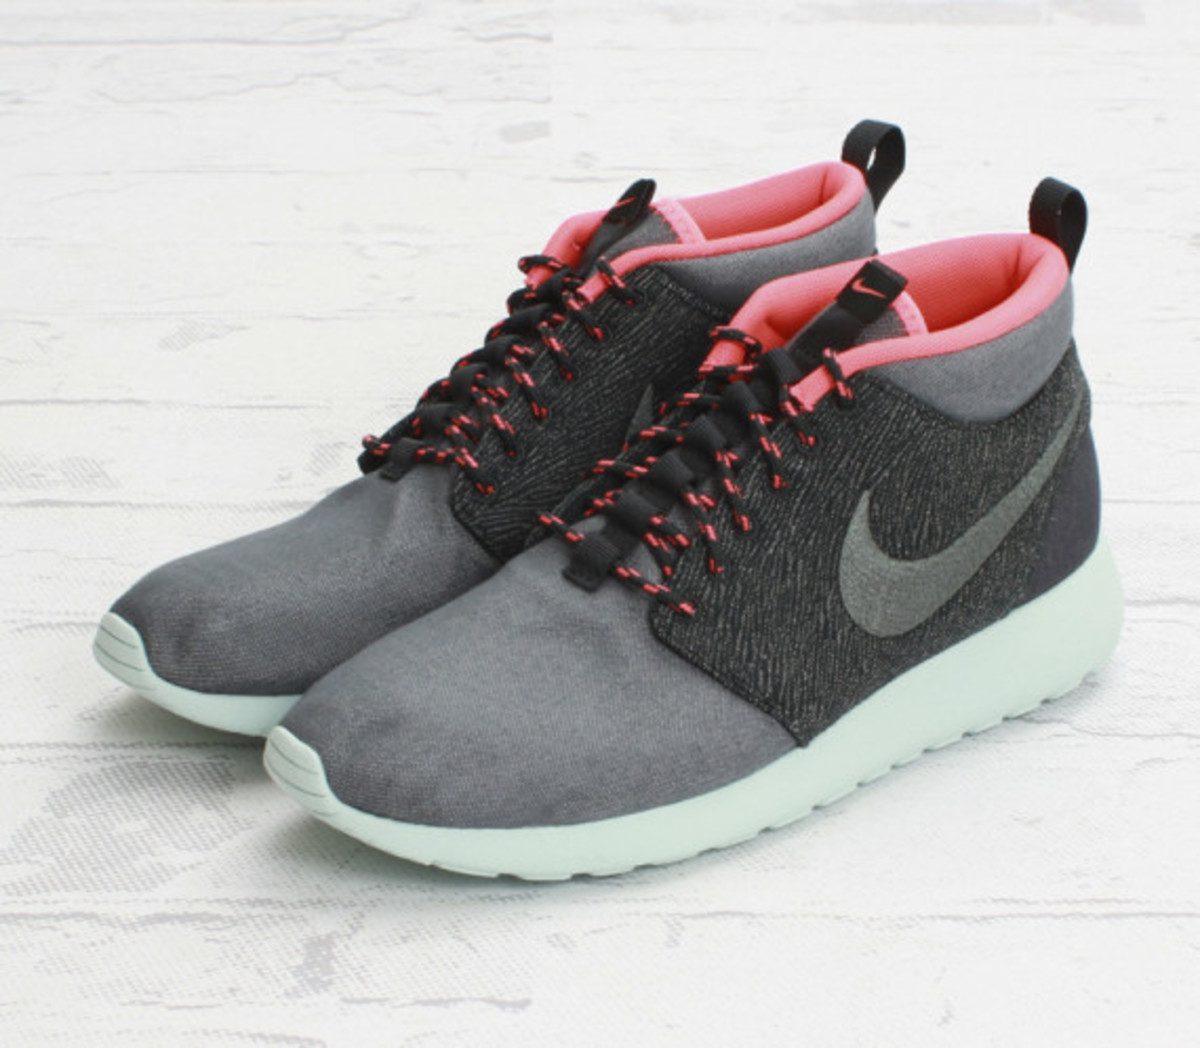 nike-roshe-run-mid-city-pack-585898-333-tokyo-concepts-boston-03